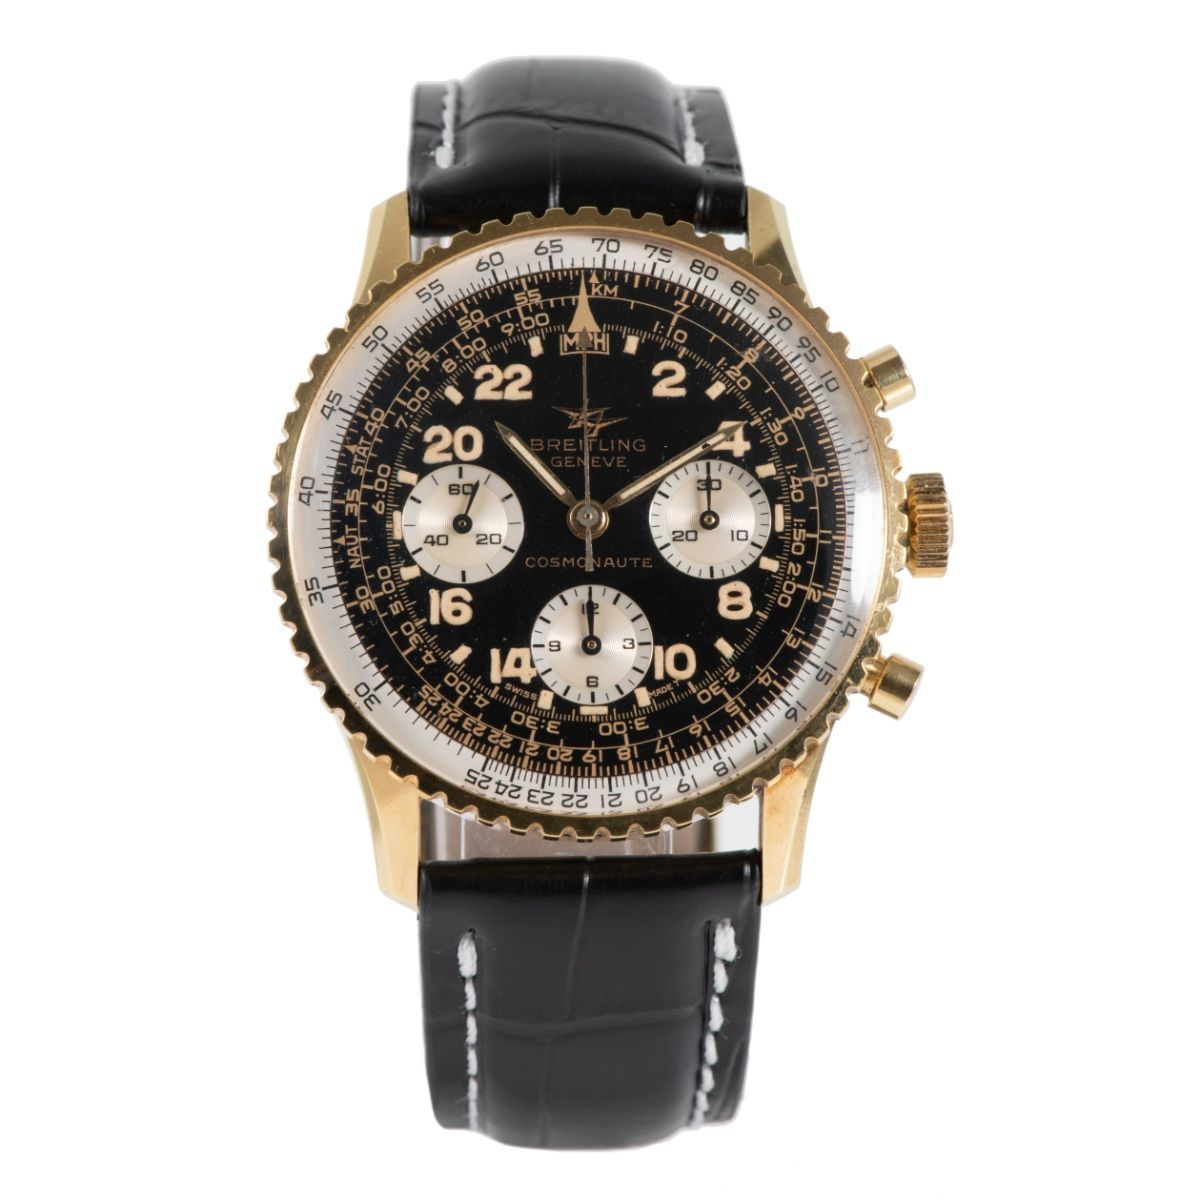 Breitling Cosmonaute 809 Gold Plated & Black 41.5mm Mens Watch